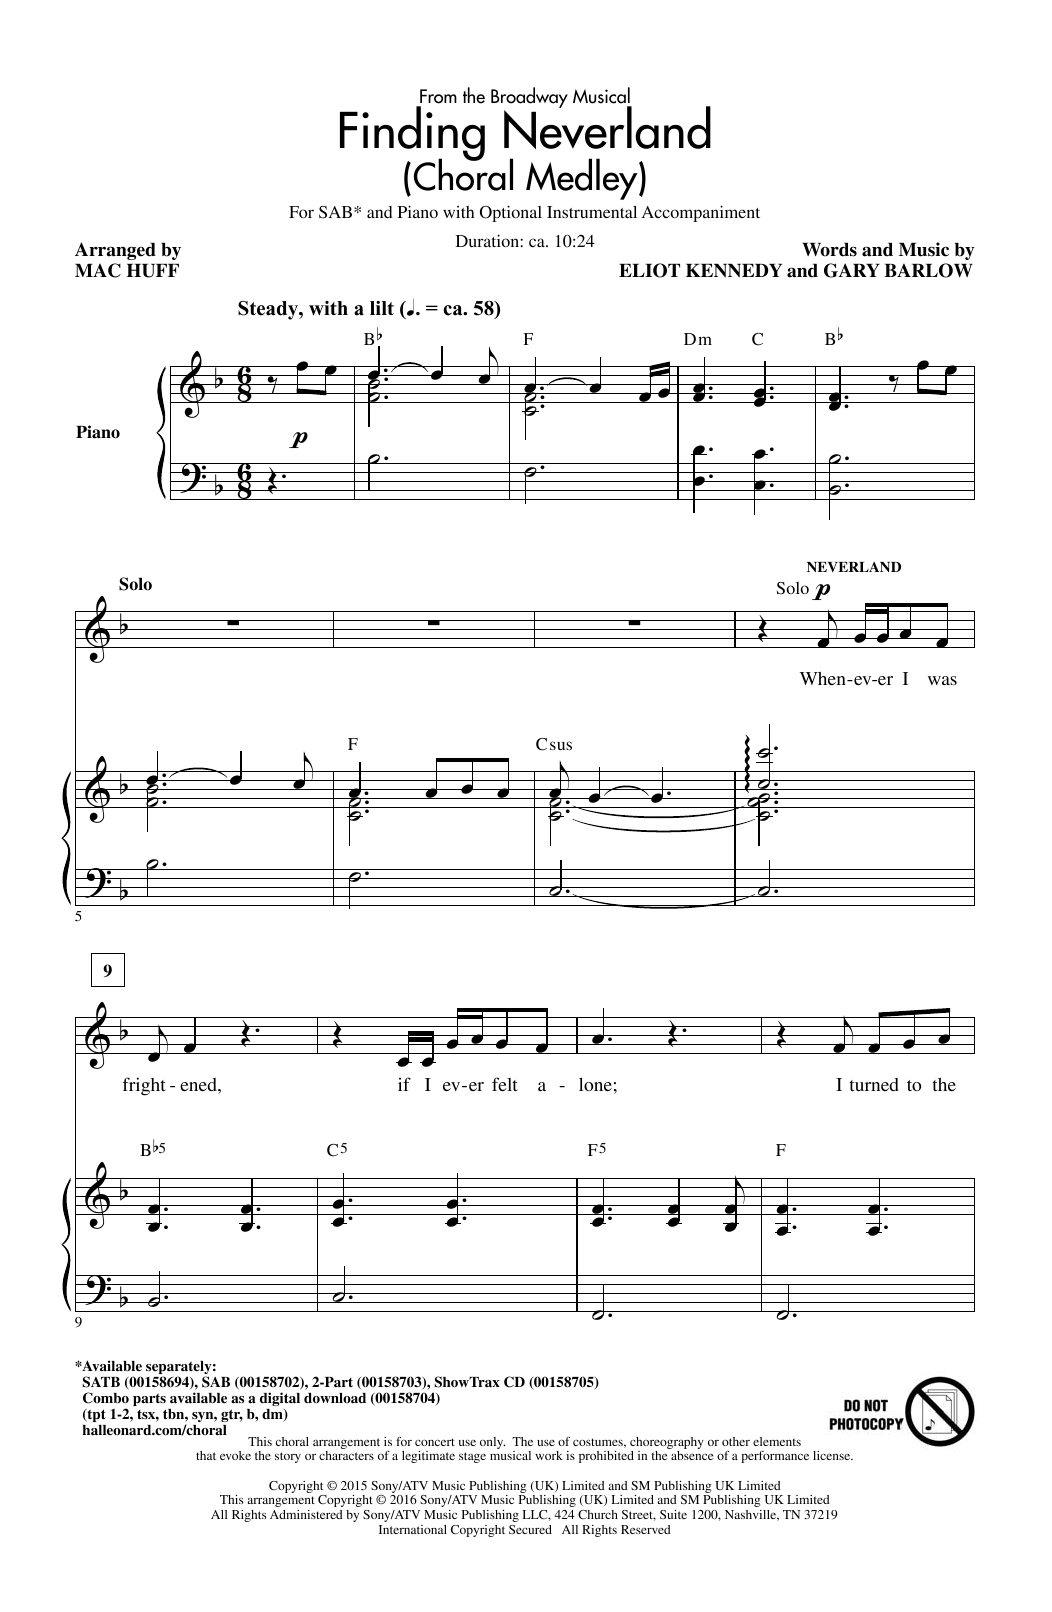 Finding Neverland (Choral Medley) (arr. Mac Huff) Sheet Music